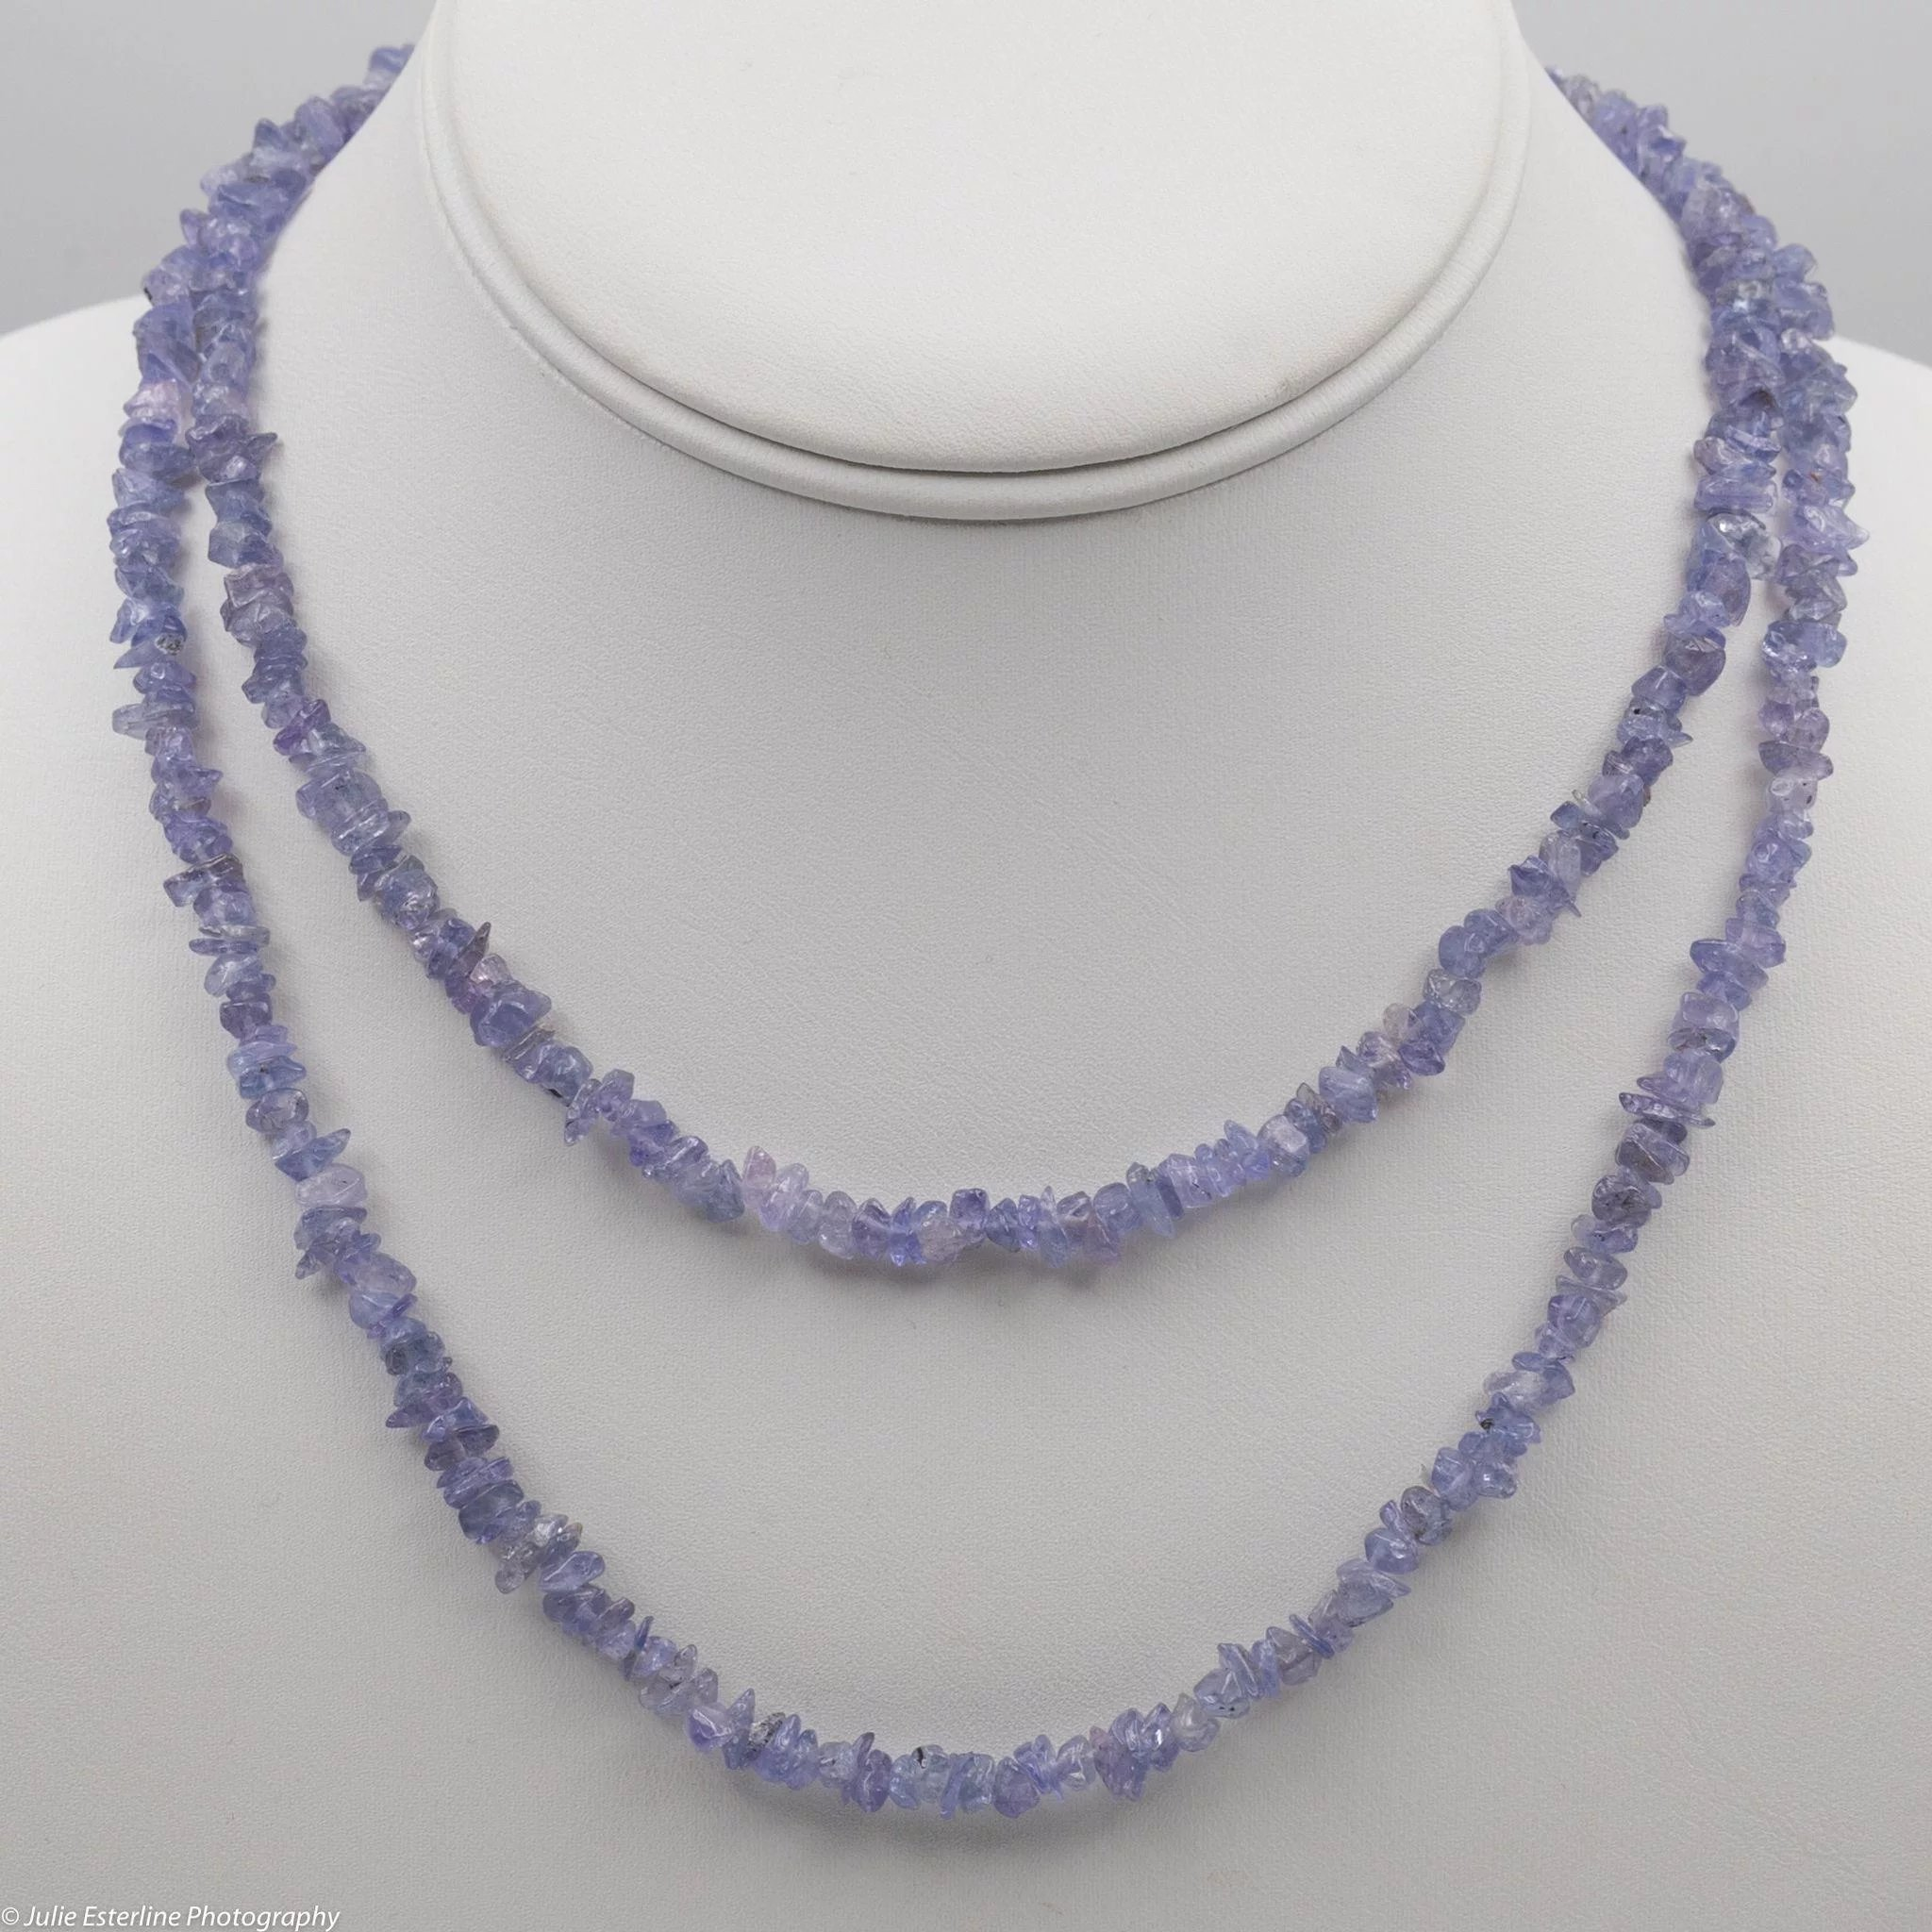 nandiz products necklaces enlarged the women jewelry aquamarine necklace and tanzanite